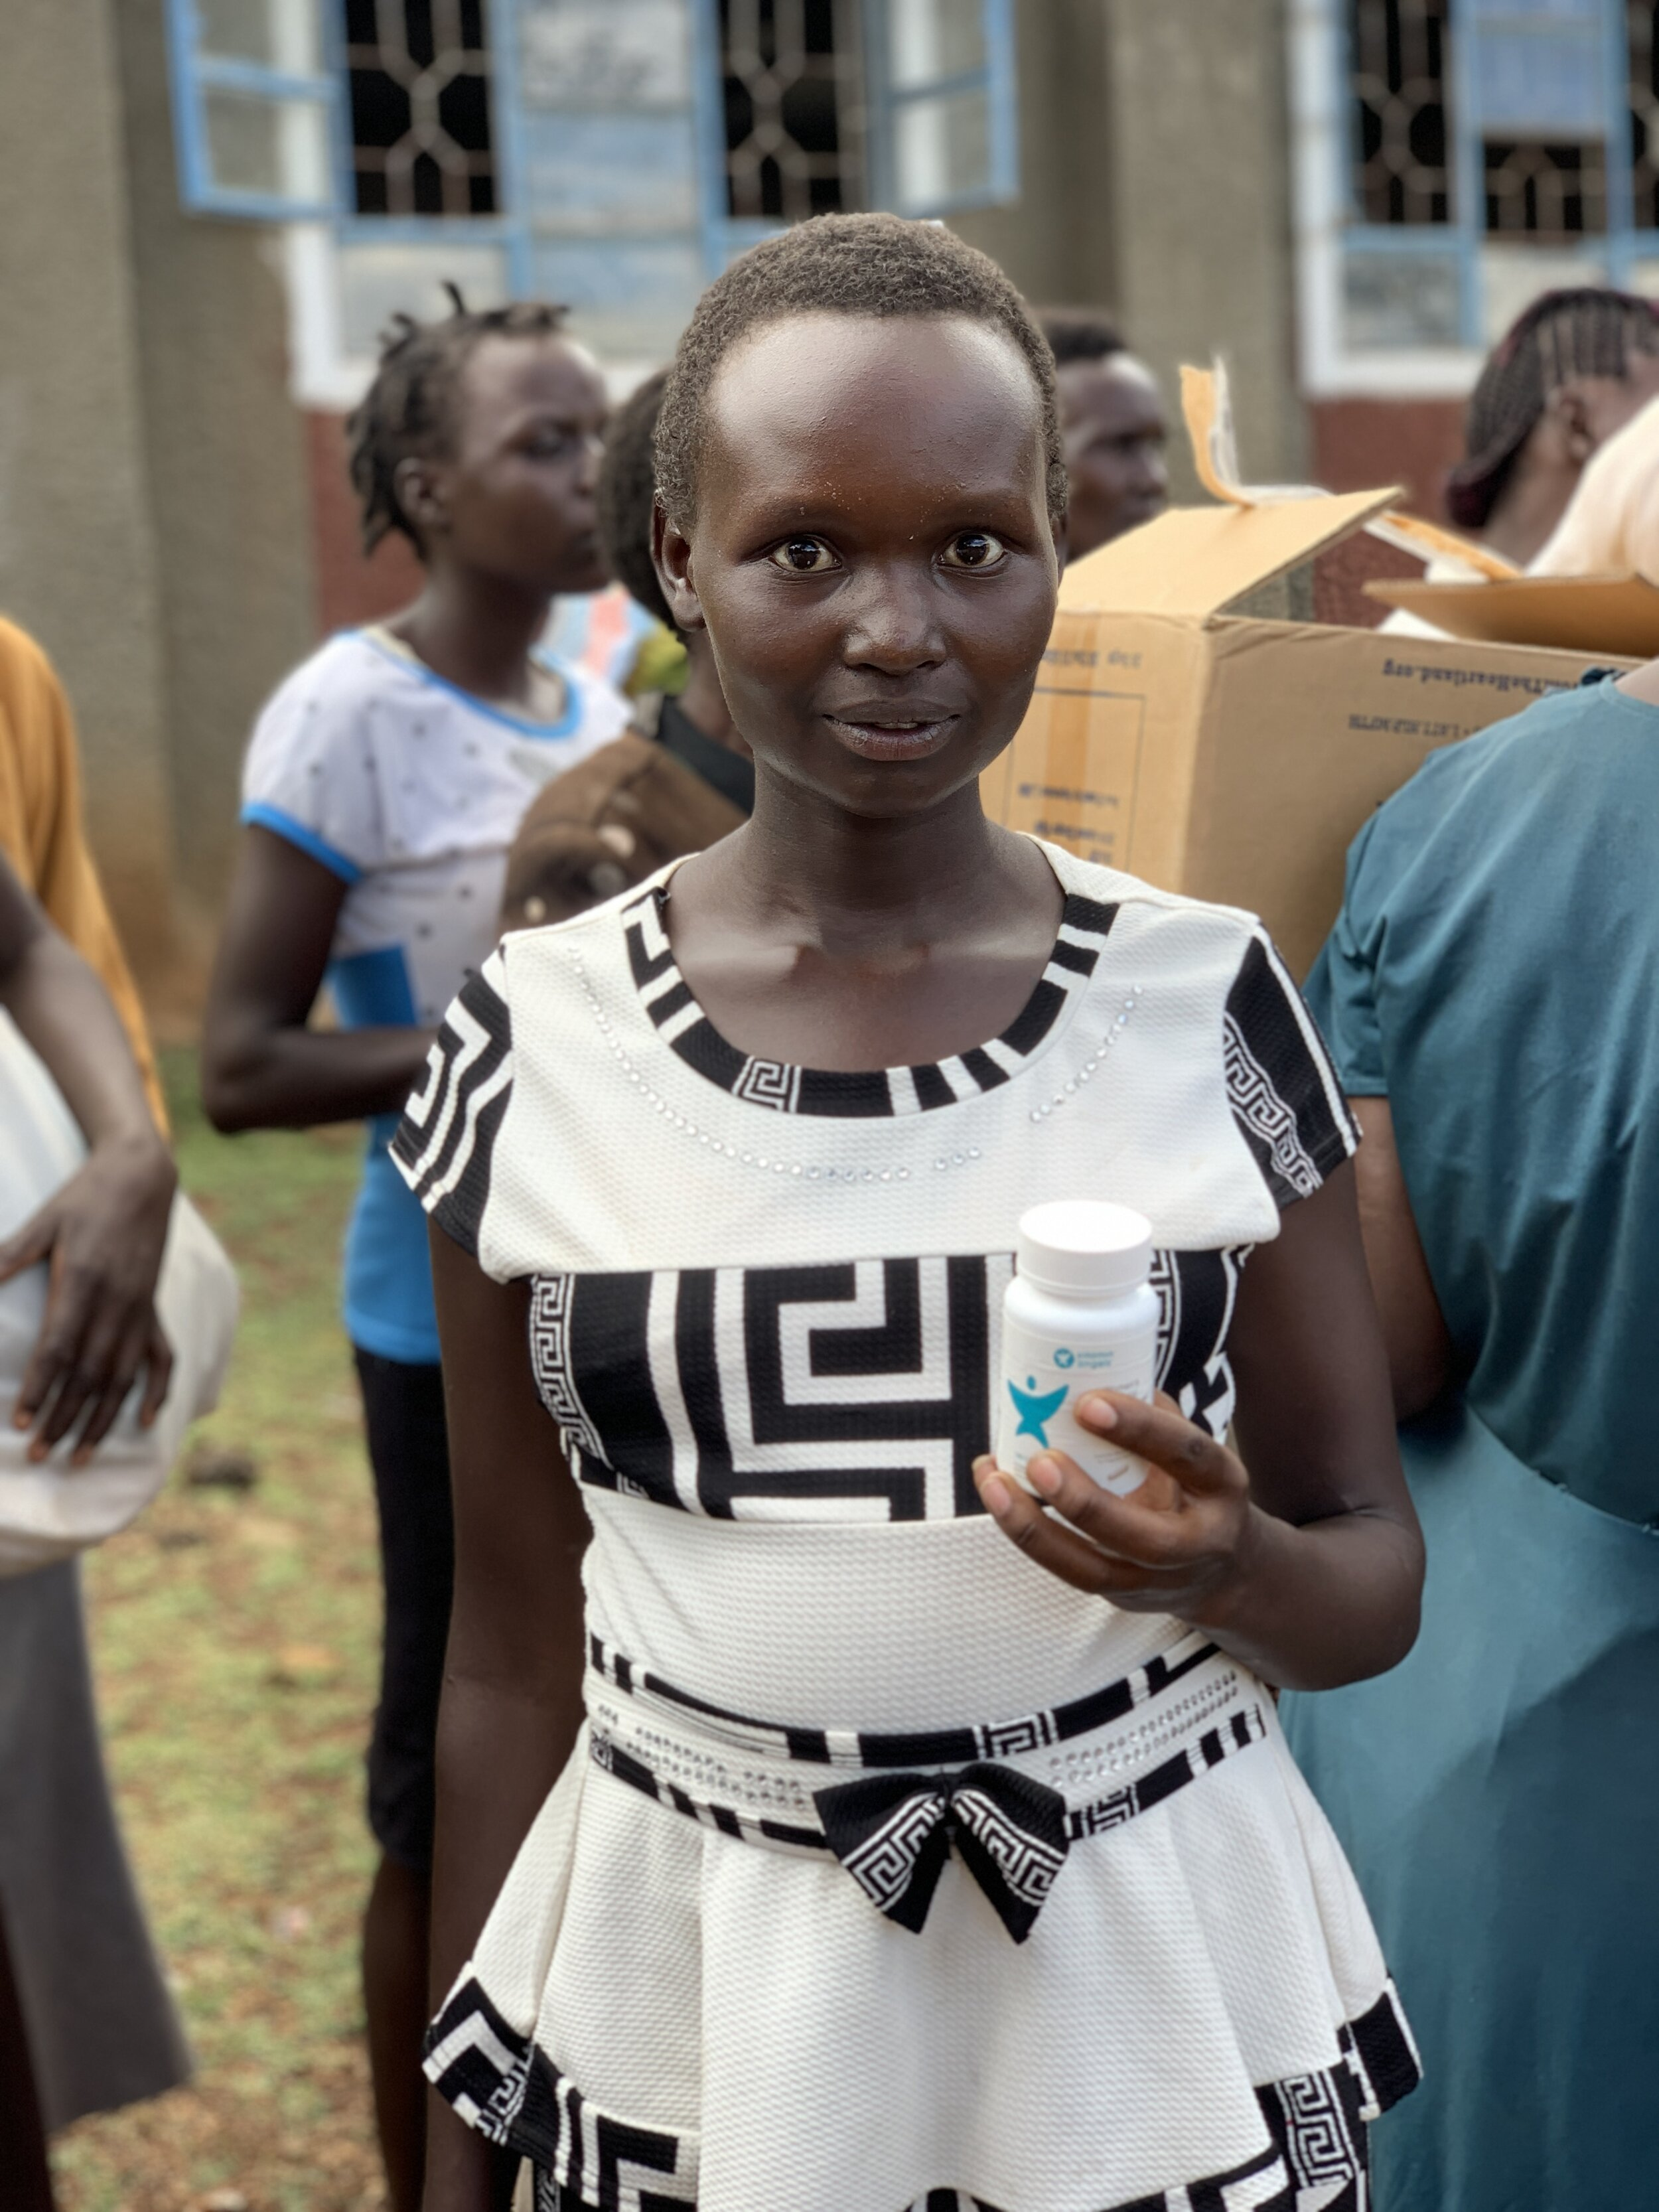 A pregnant mother receives prenatal vitamins in Kenya